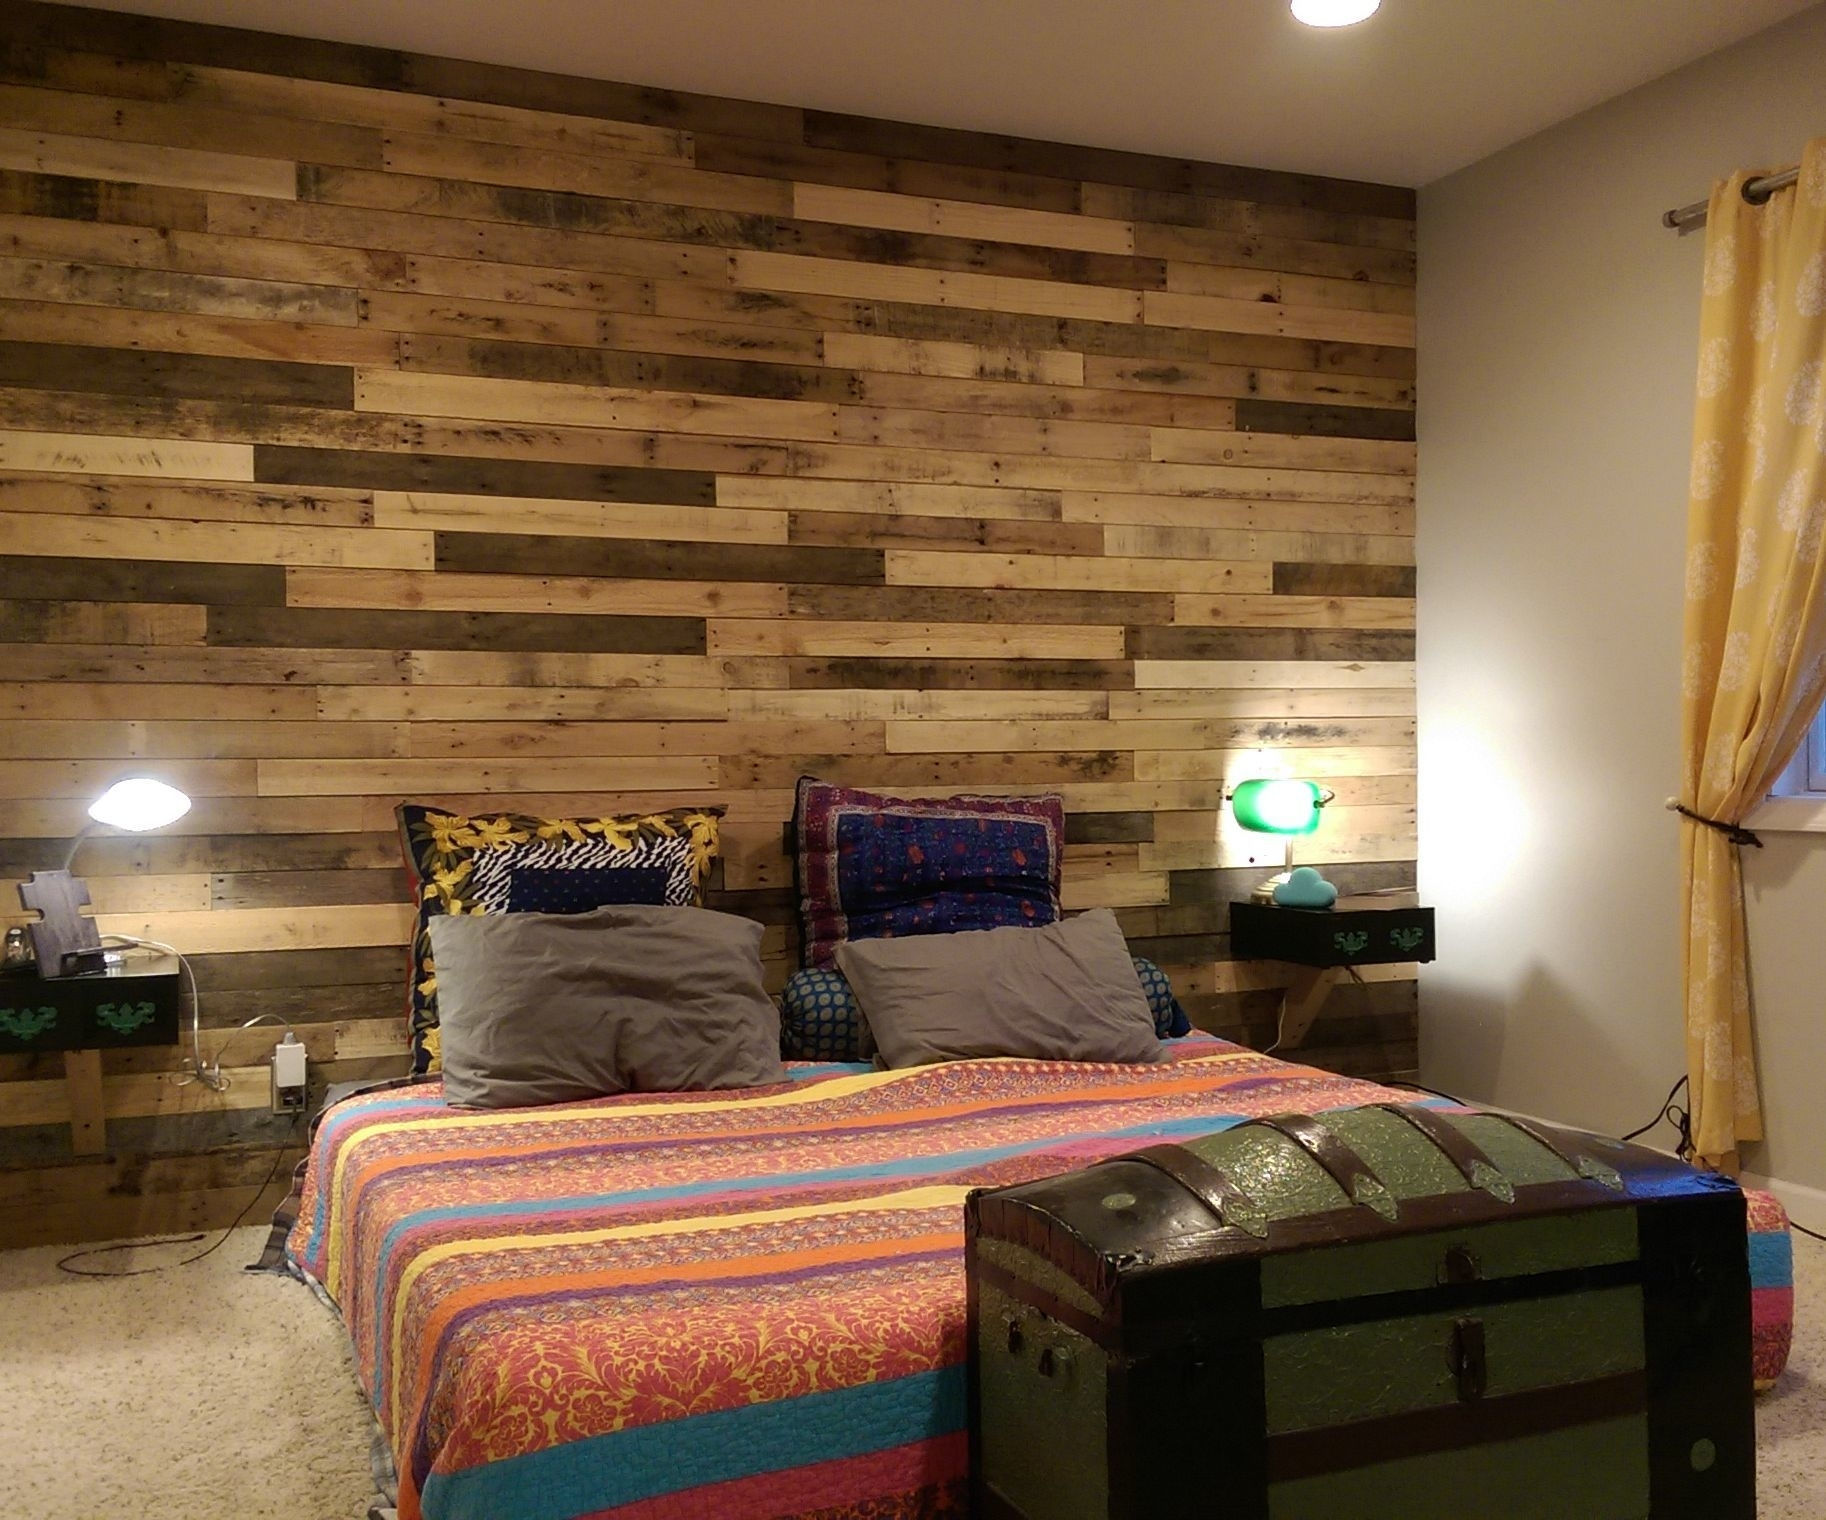 Pallet Accent Wall: 4 Steps (with Pictures) Within Most Recent Wall Accents Made From Pallets (Gallery 2 of 15)